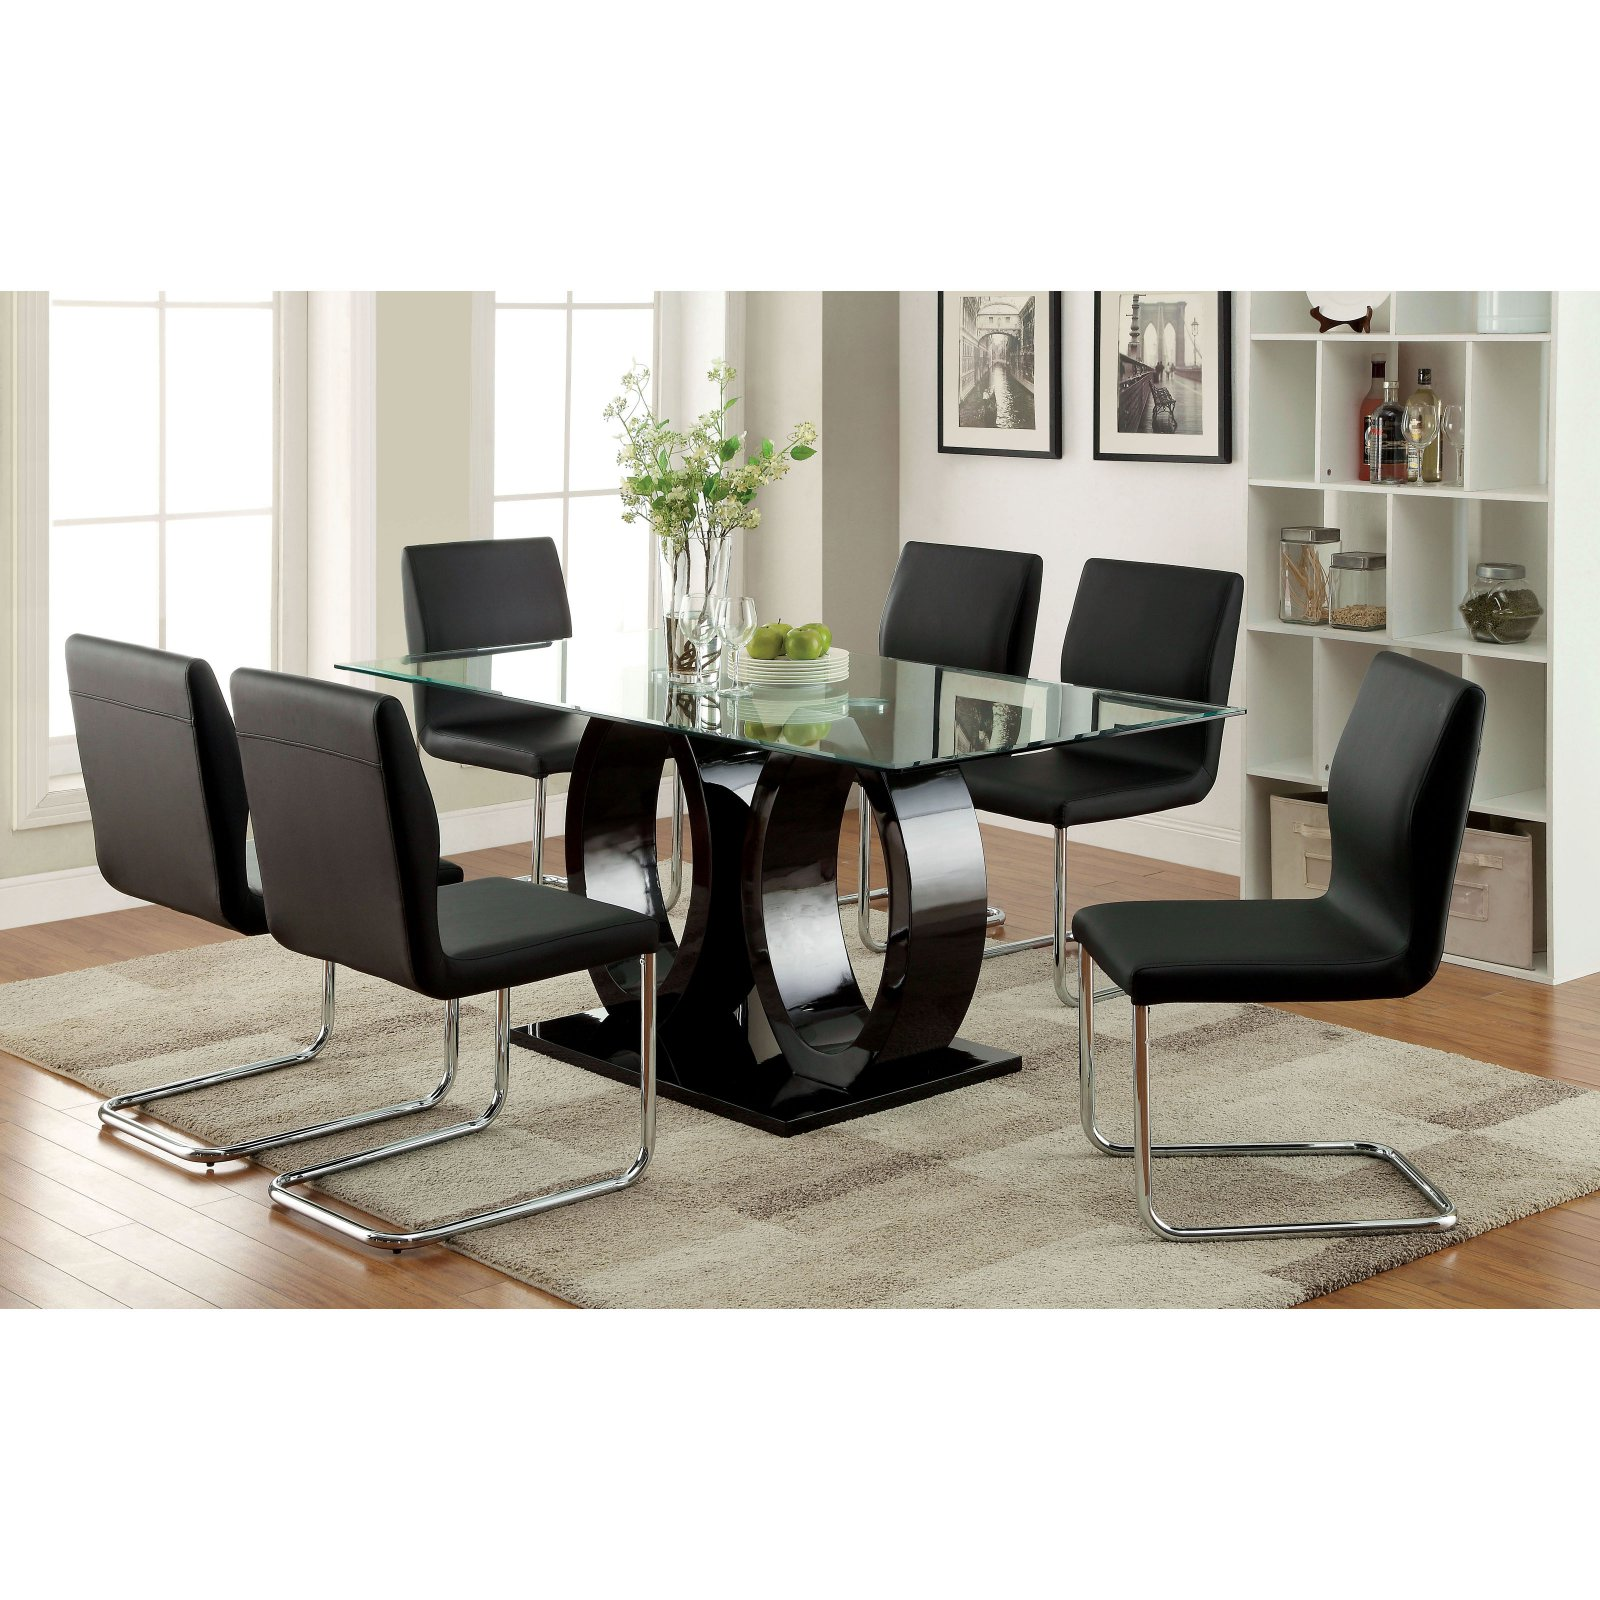 Furniture of America Damore Contemporary High Gloss Dining Table